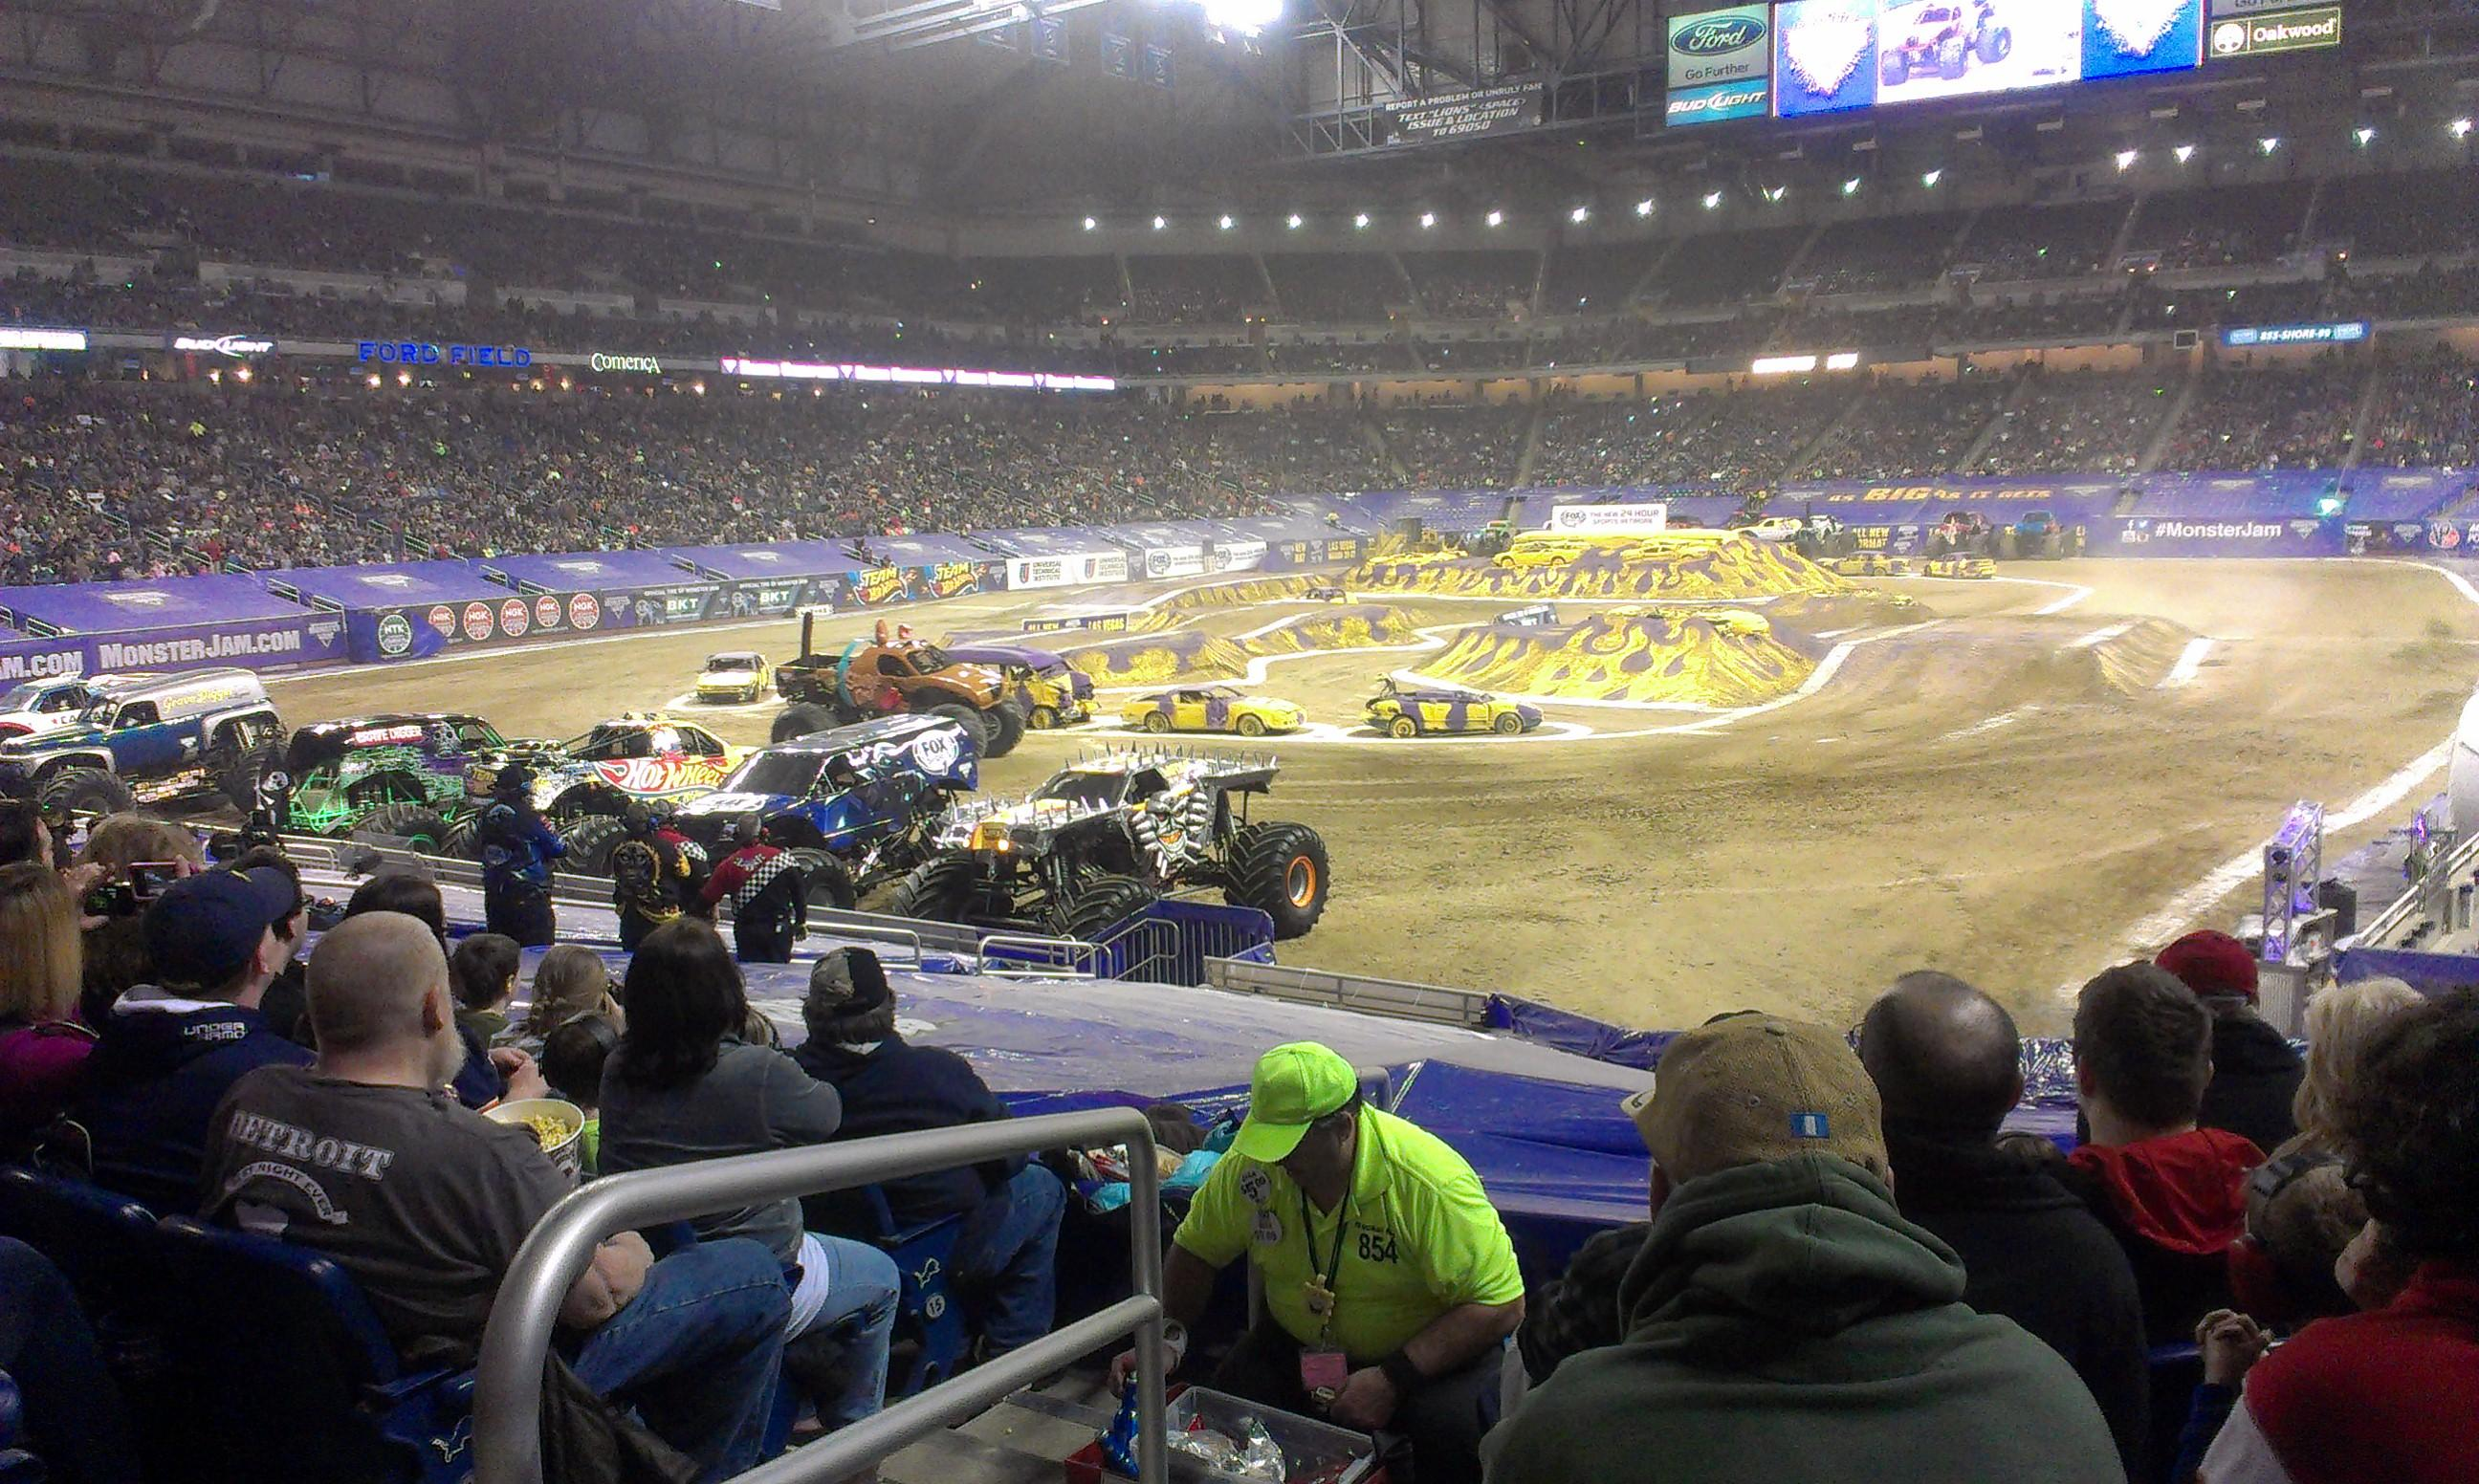 Ford Field Section 141 Row 20 Seat 1